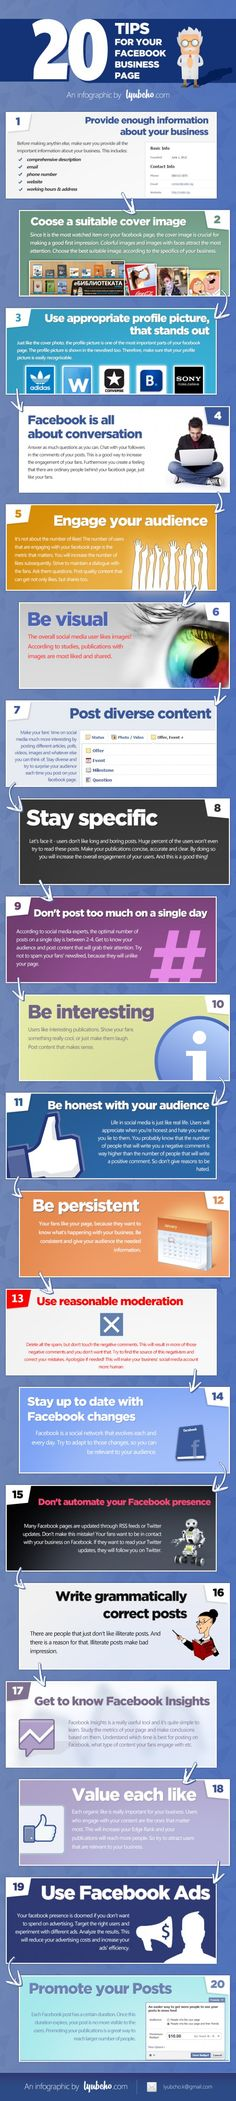 20 tips for your Facebook business page. #infographic #socialmedia #tips #business